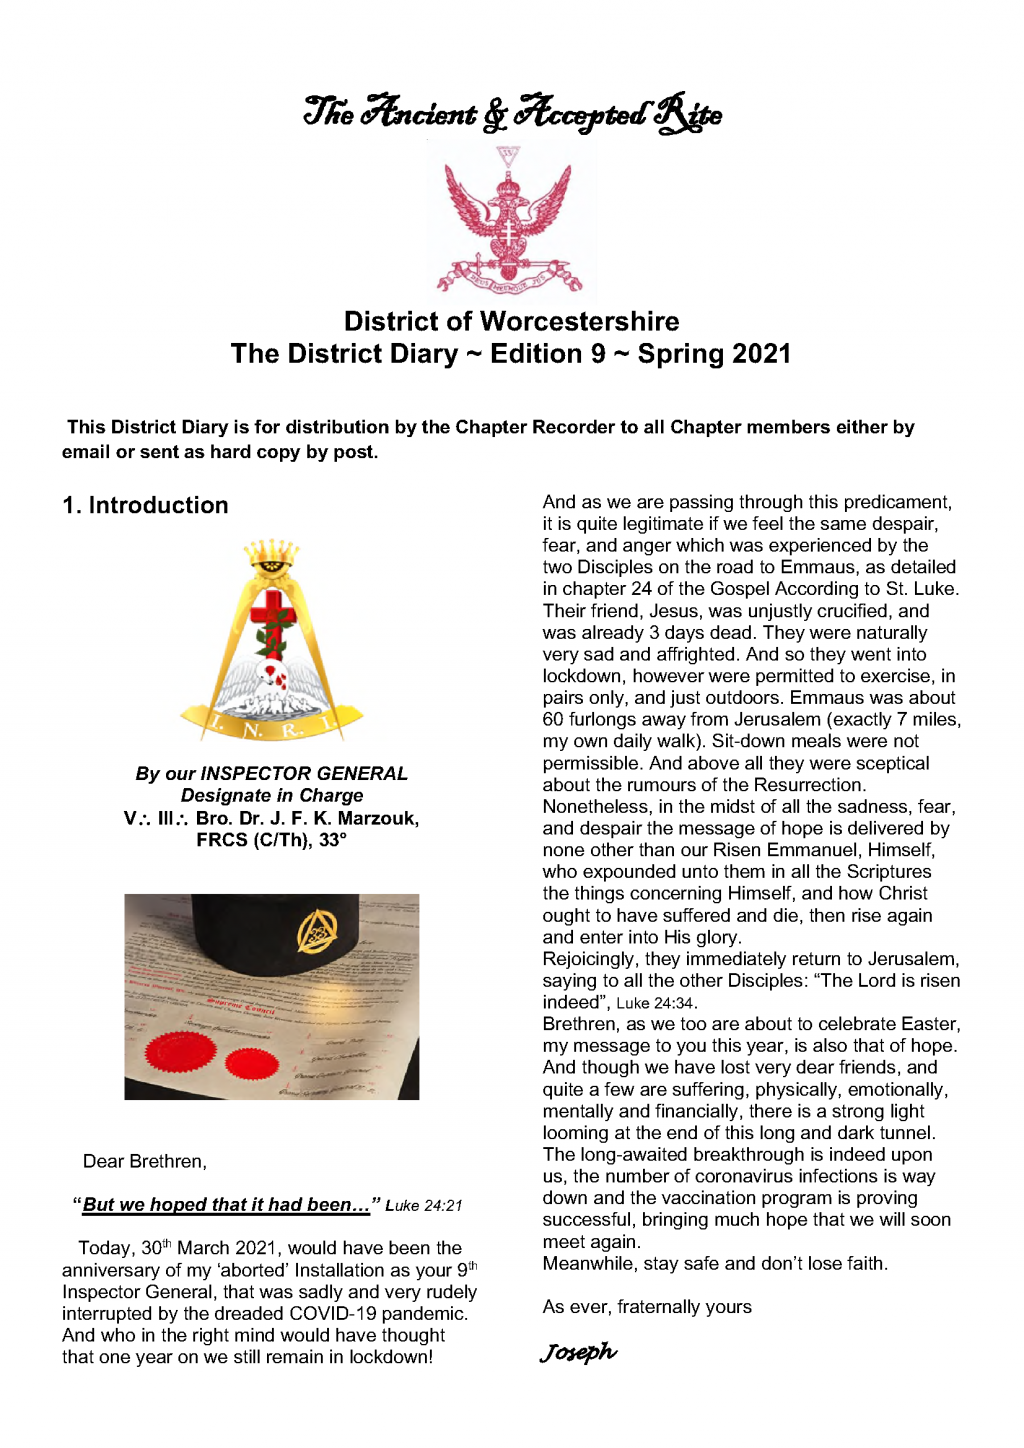 District Diary Edition 9 Spring 2021_1.png